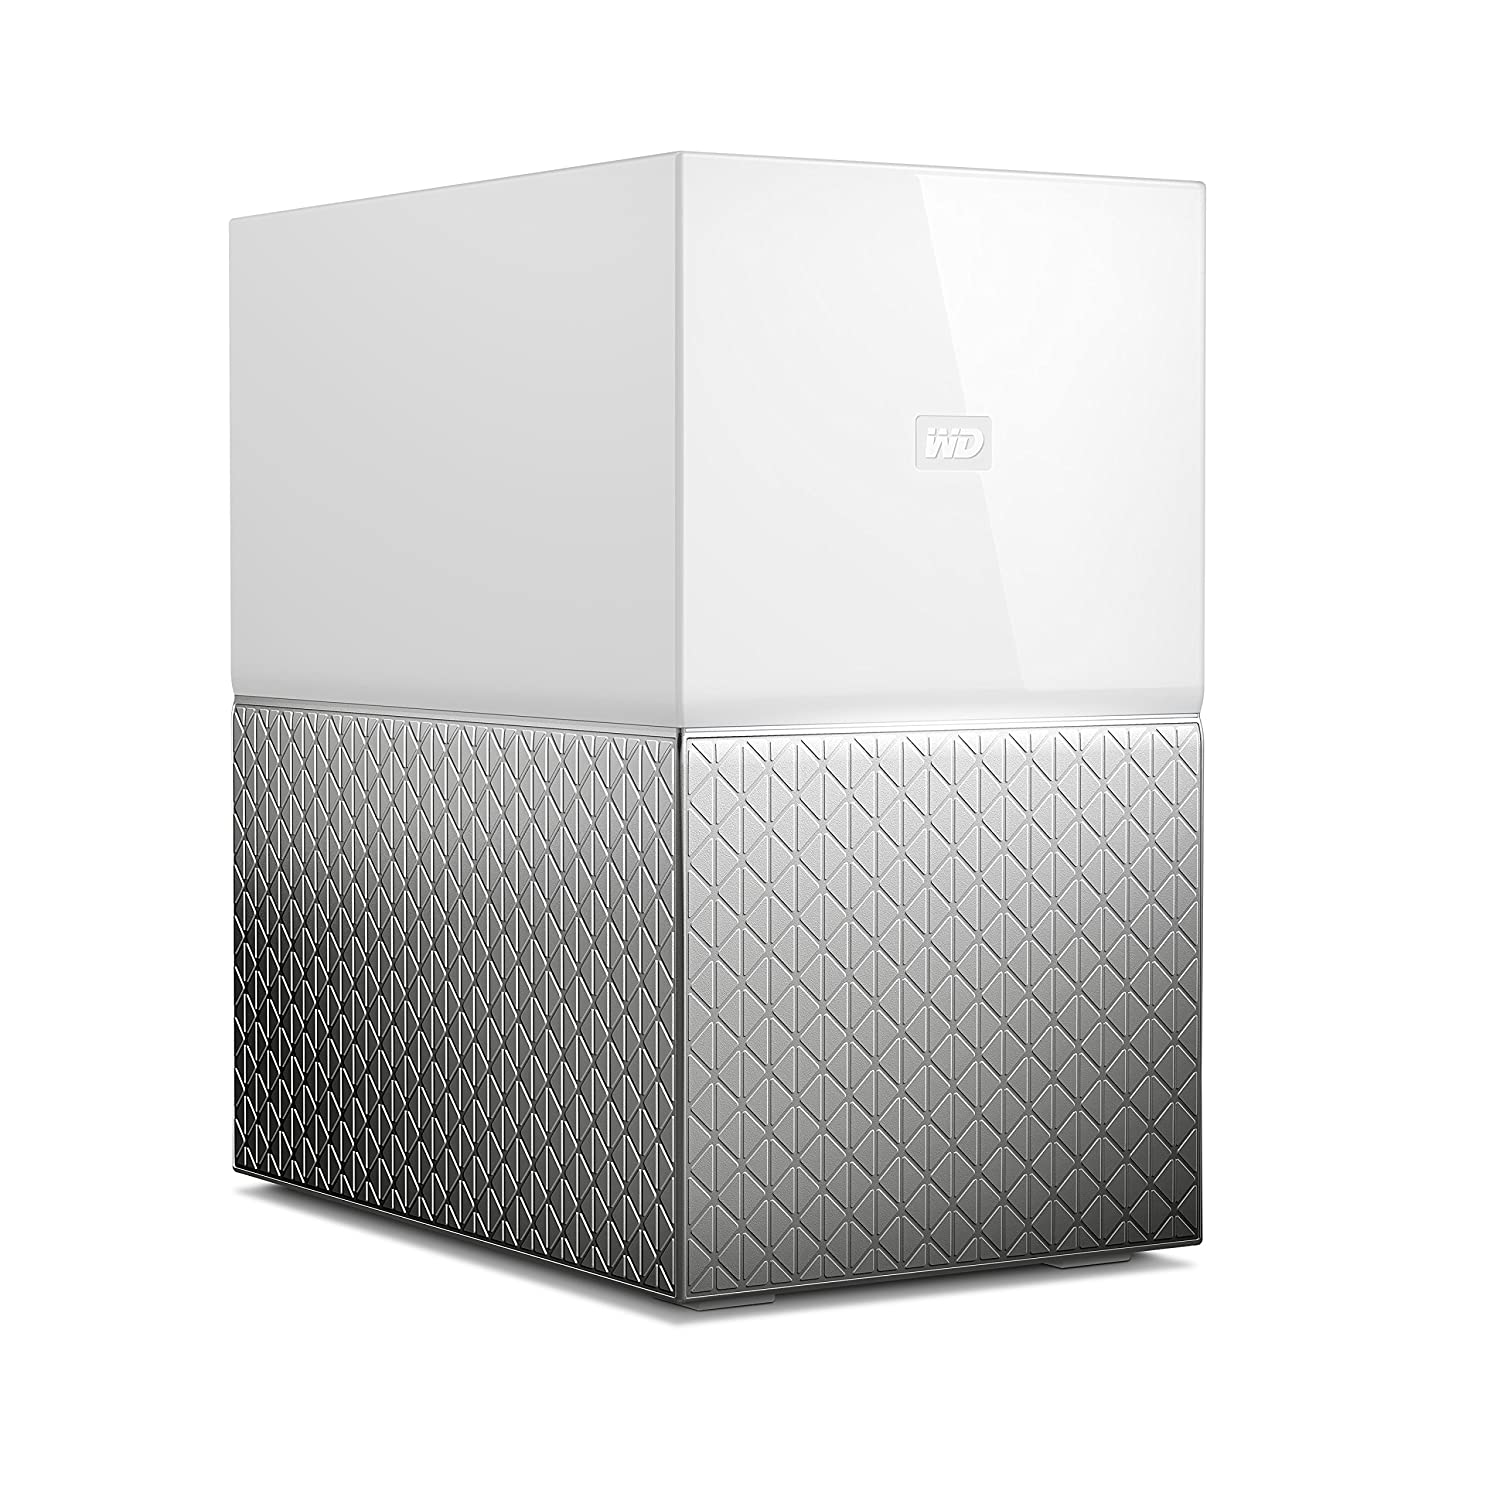 WD 16TB My Cloud Home Duo Personal Cloud Storage - Dual Drive